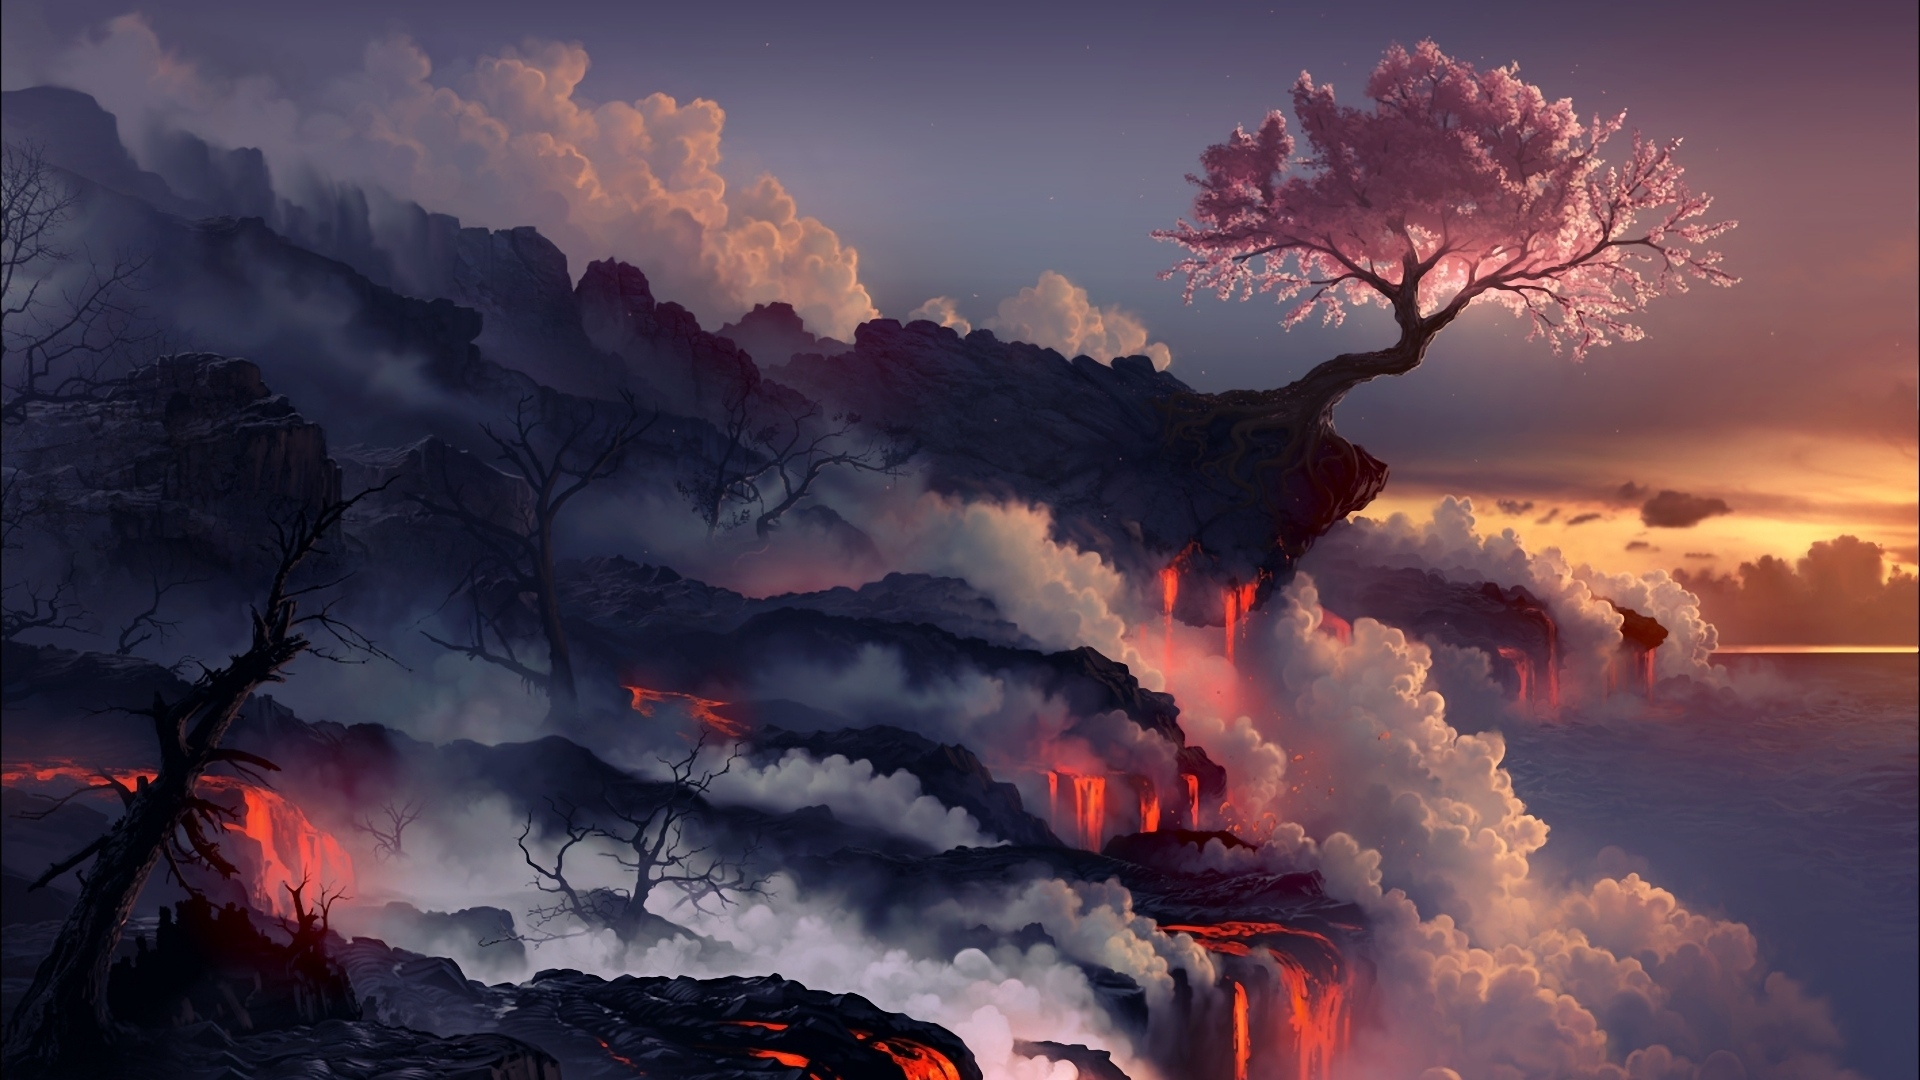 eruption_lava_volcano_oriental_cherry_tr